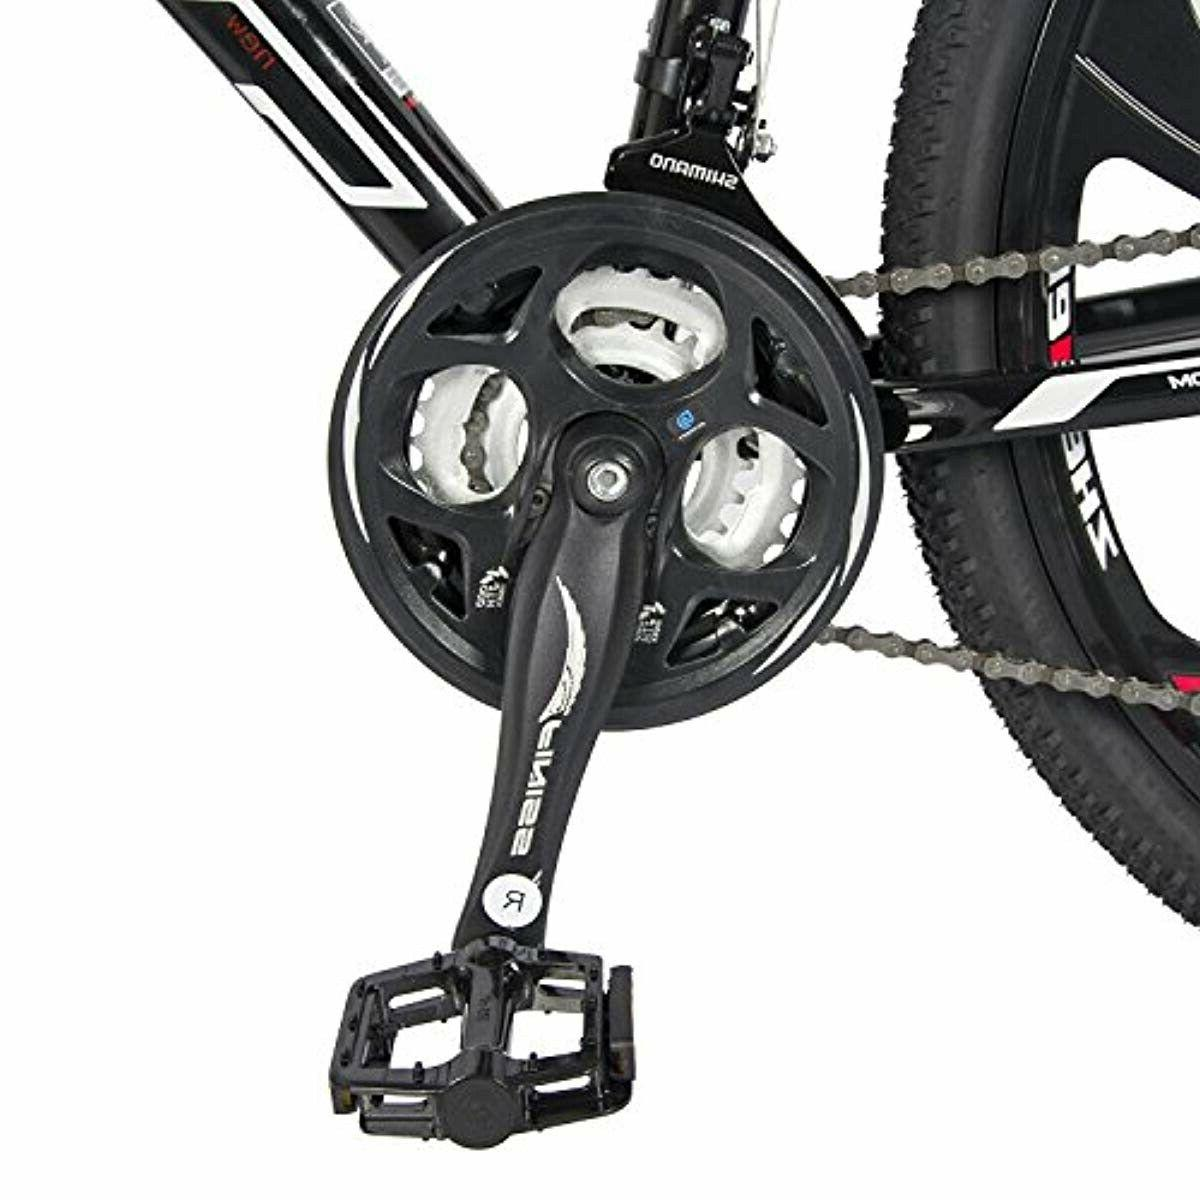 "Merax 26"" Aluminum 21 Wheel Mountain Bike"